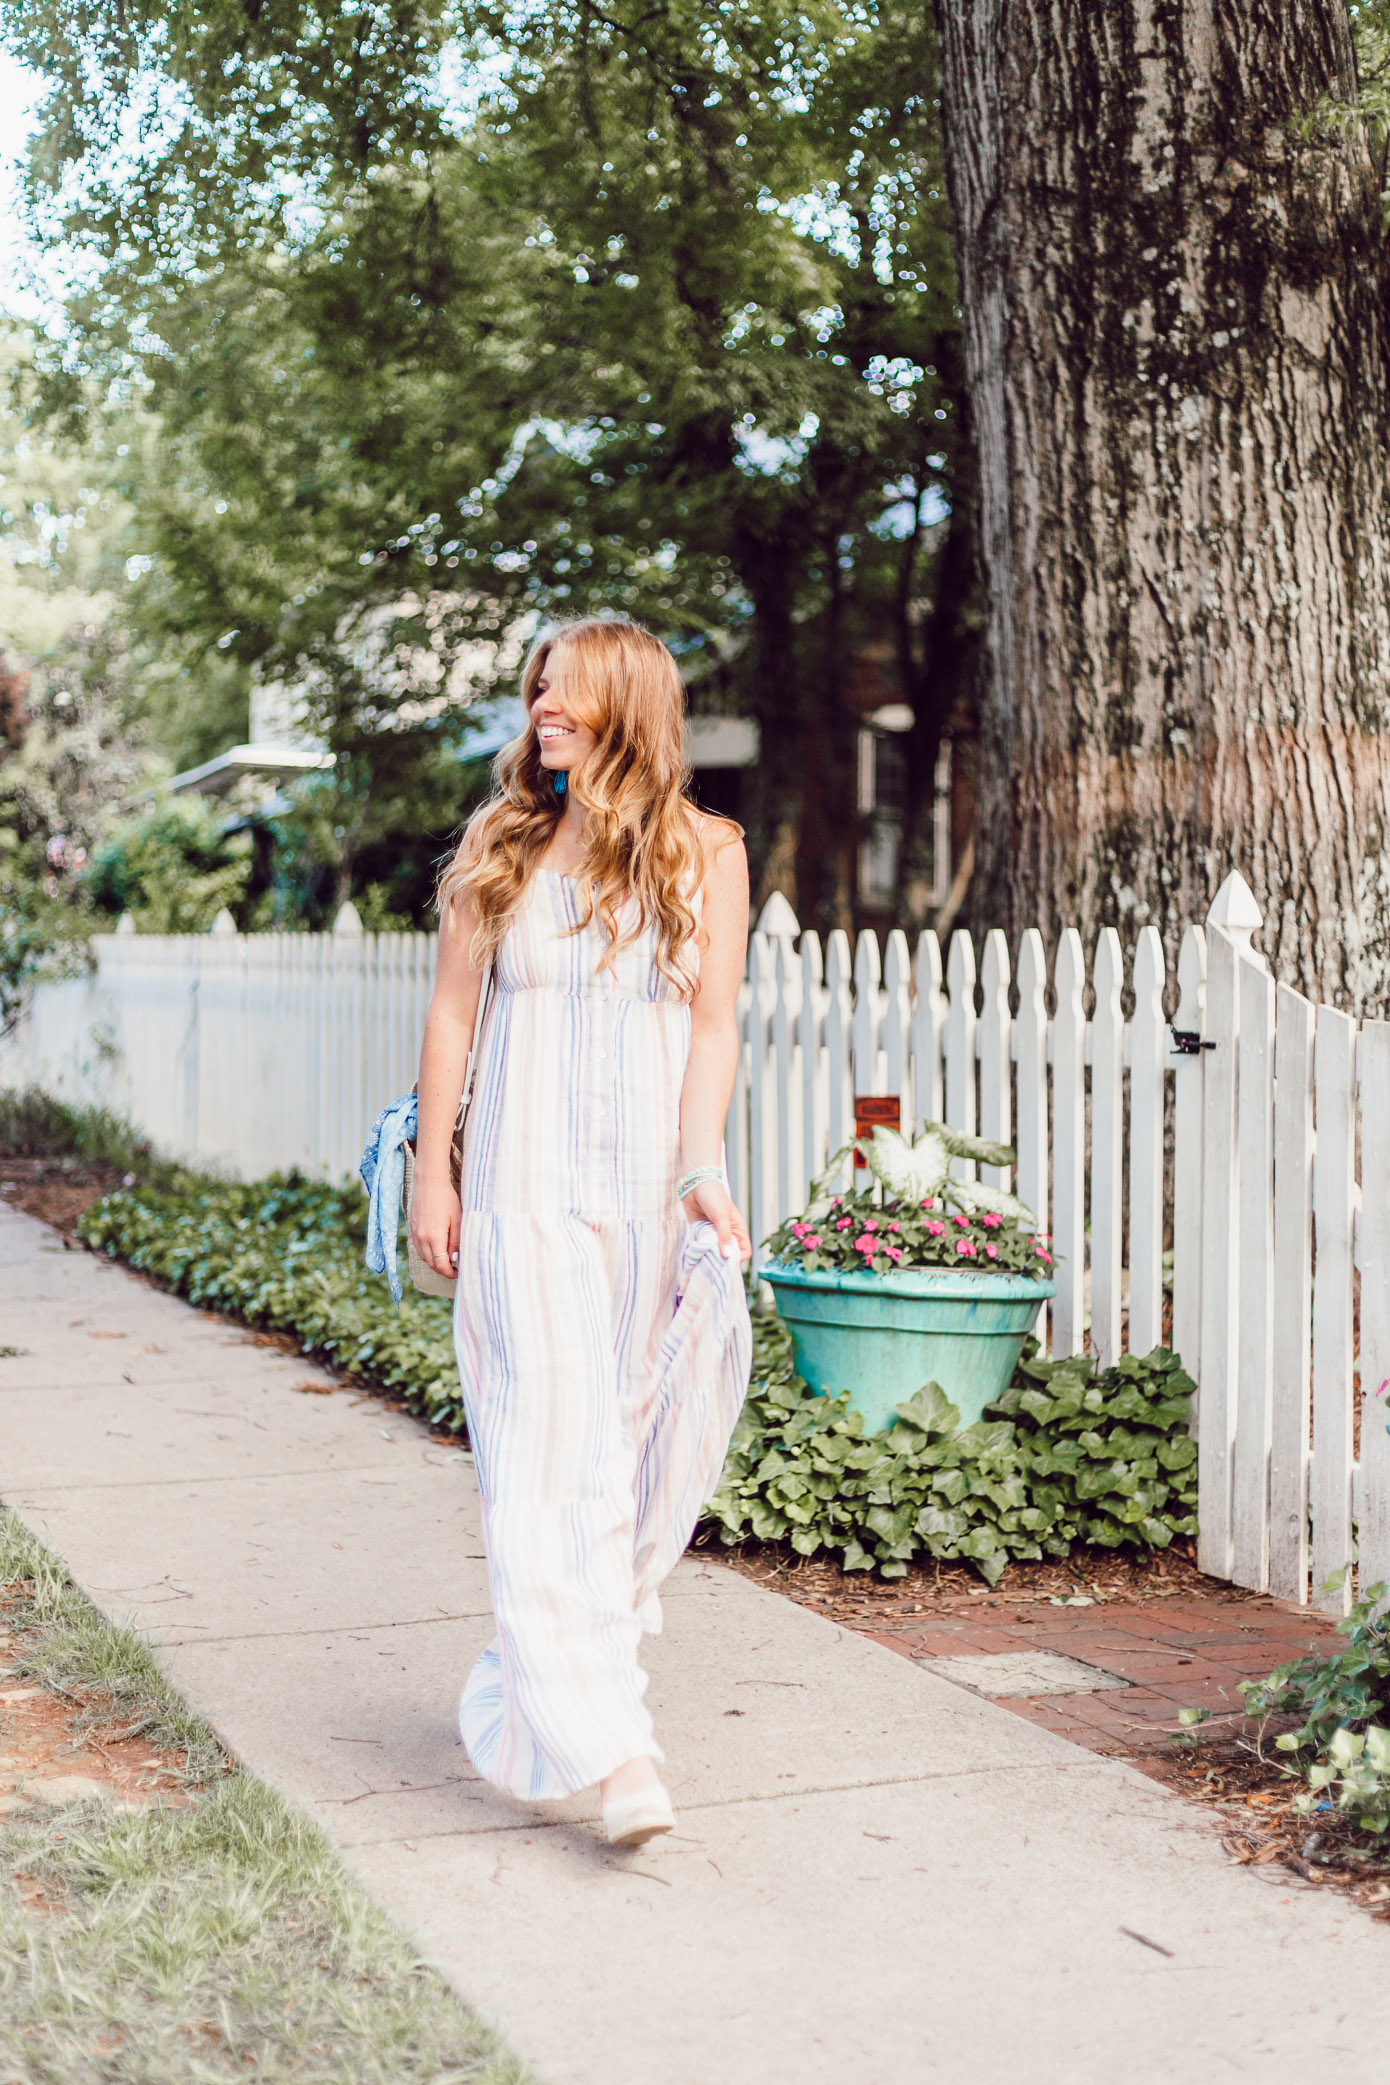 Summer Weekend Style from Friday to Sunday featured by Louella Reese | Splendid Striped Linen Maxi Dress